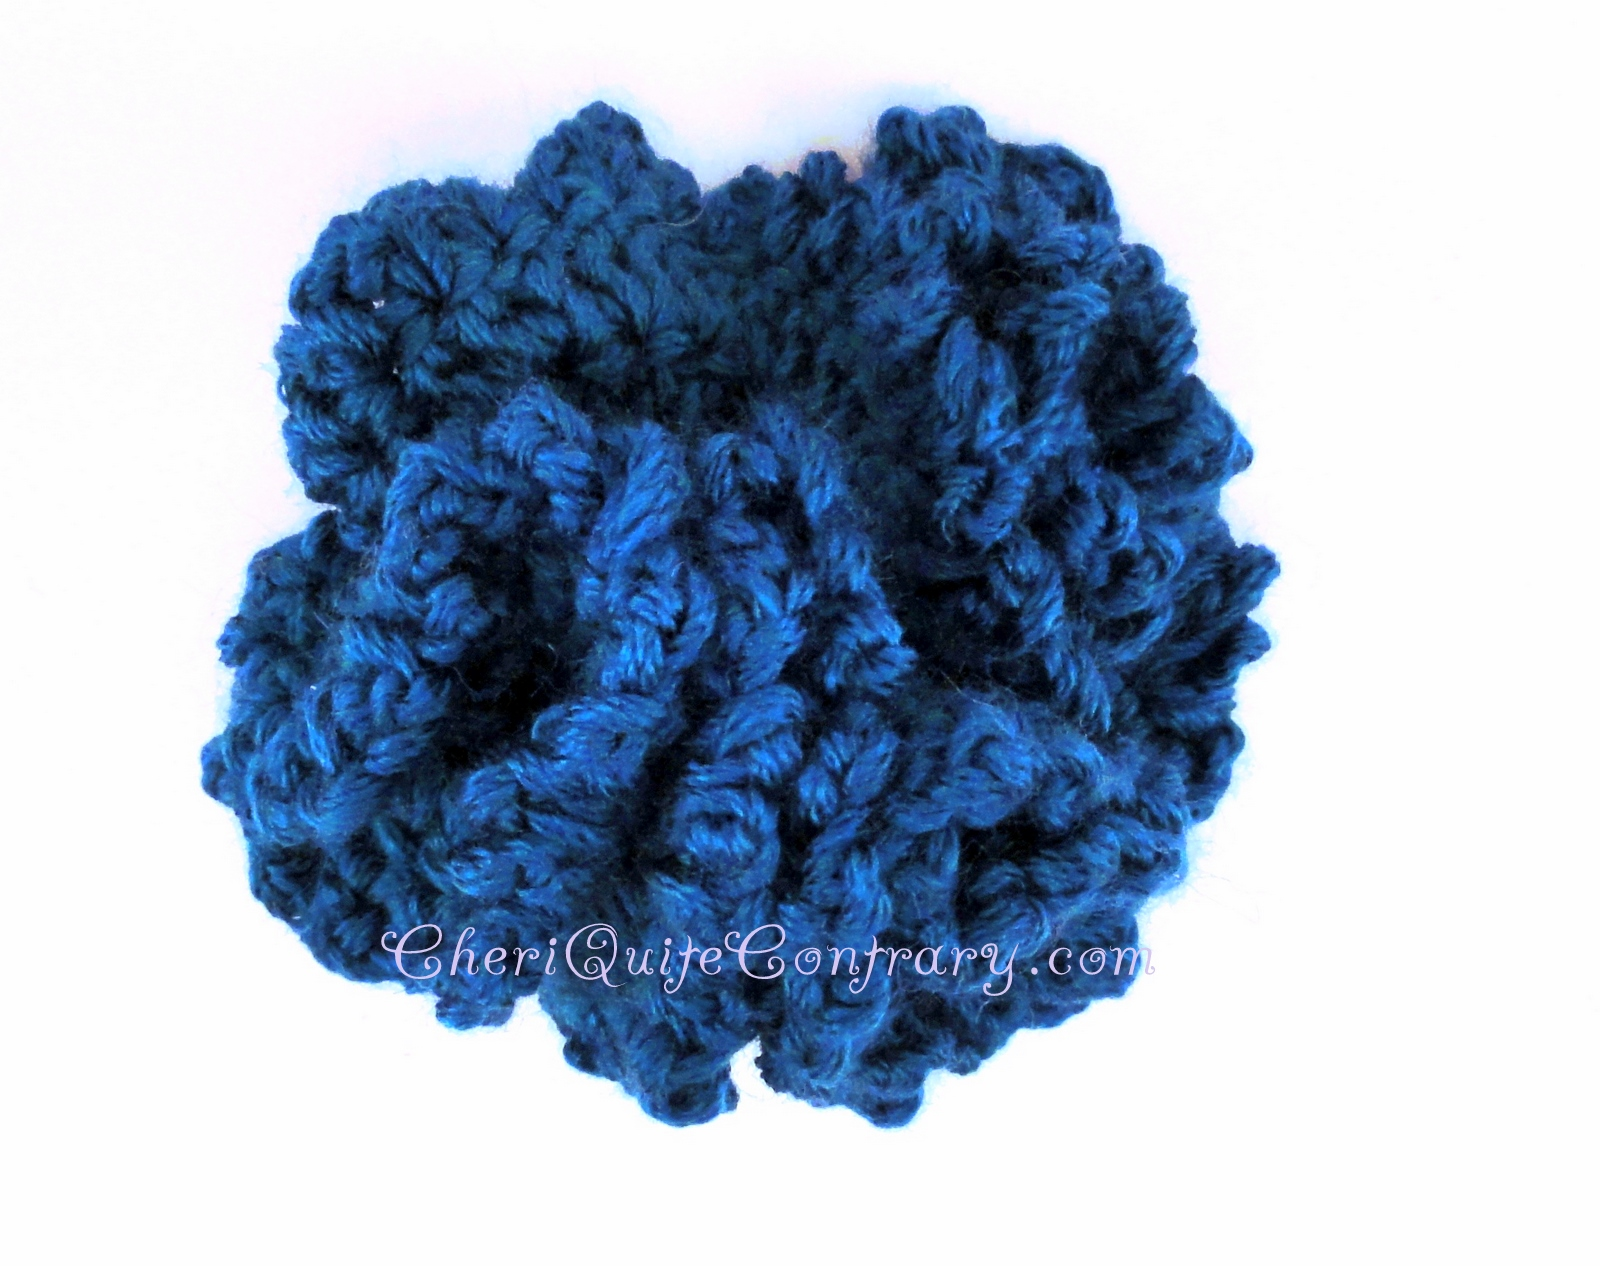 Always Blooming Bouquet - AllFreeCrochet.com - Free Crochet